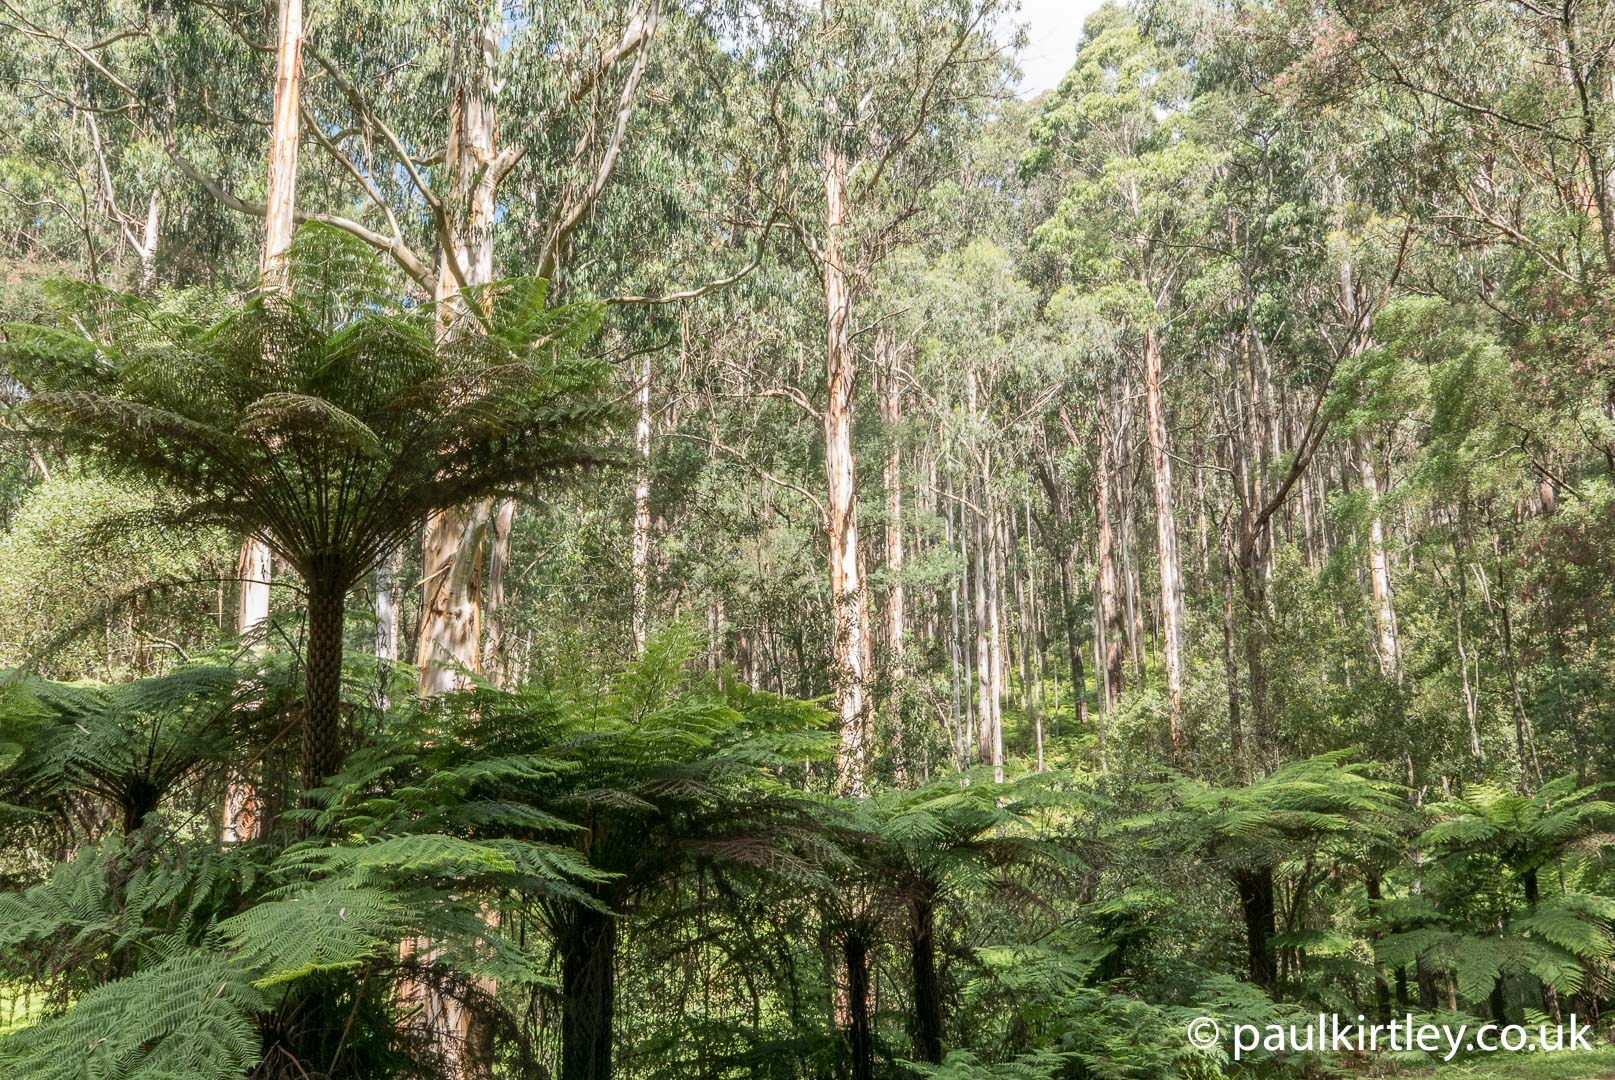 Tree ferns and mountain ash in the Dandenong Ranges, Victoria, Australia